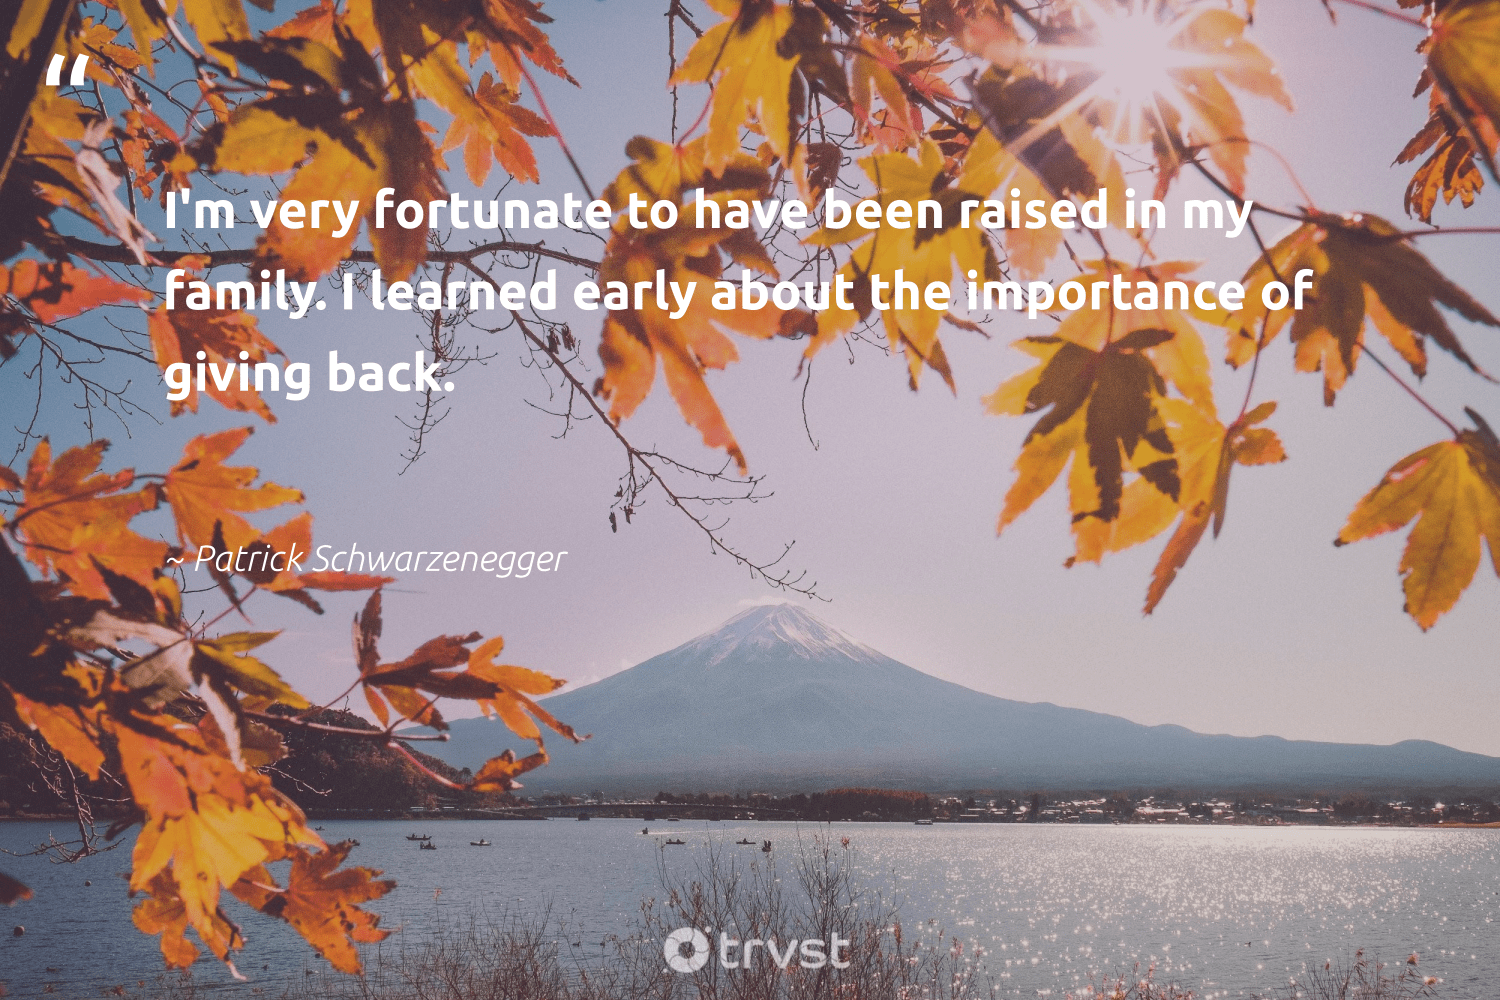 """""""I'm very fortunate to have been raised in my family. I learned early about the importance of giving back.""""  - Patrick Schwarzenegger #trvst #quotes #givingback #family #dogood #giveback #changemakers #togetherwecan #changetheworld #socialgood #itscooltobekind #giveforthefuture"""